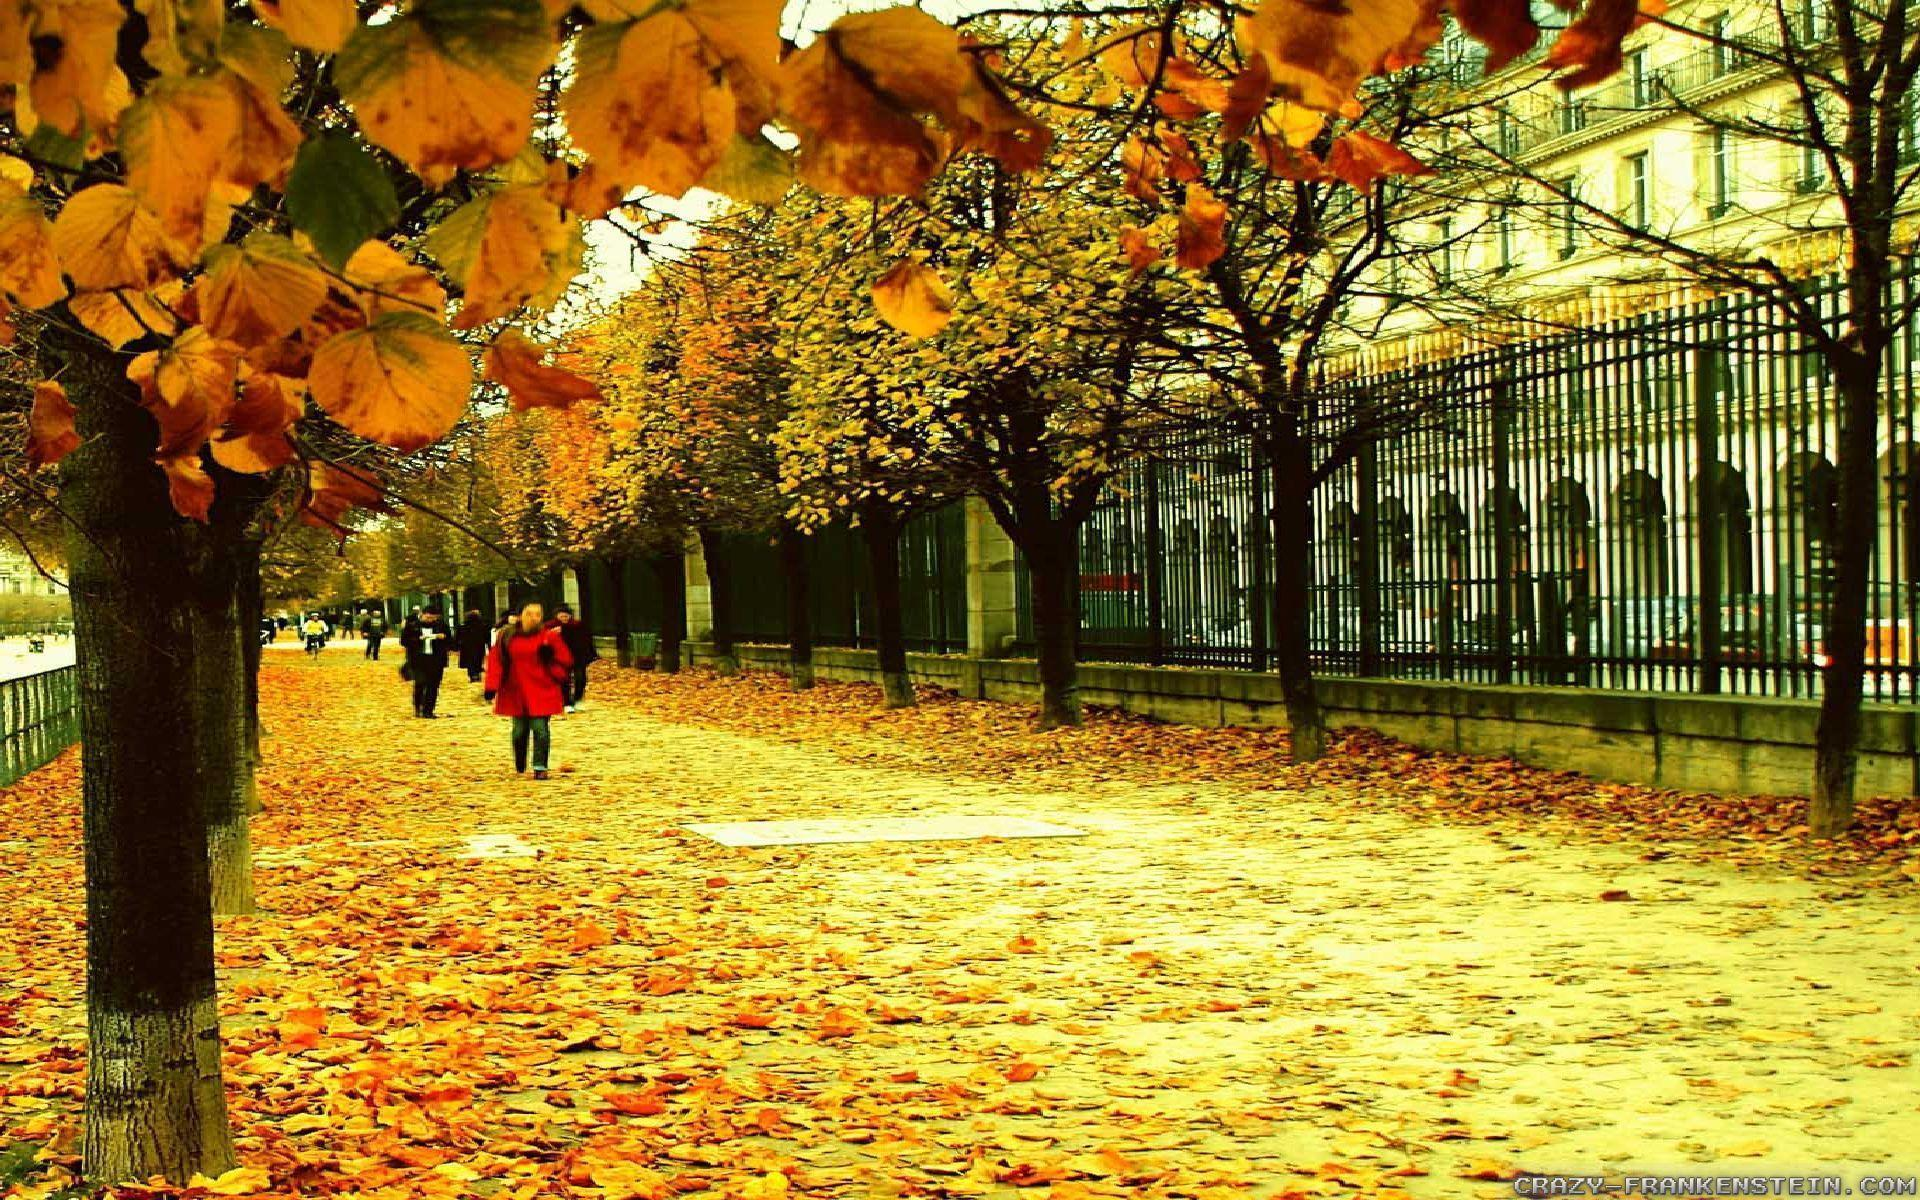 Autumn In France wallpapers